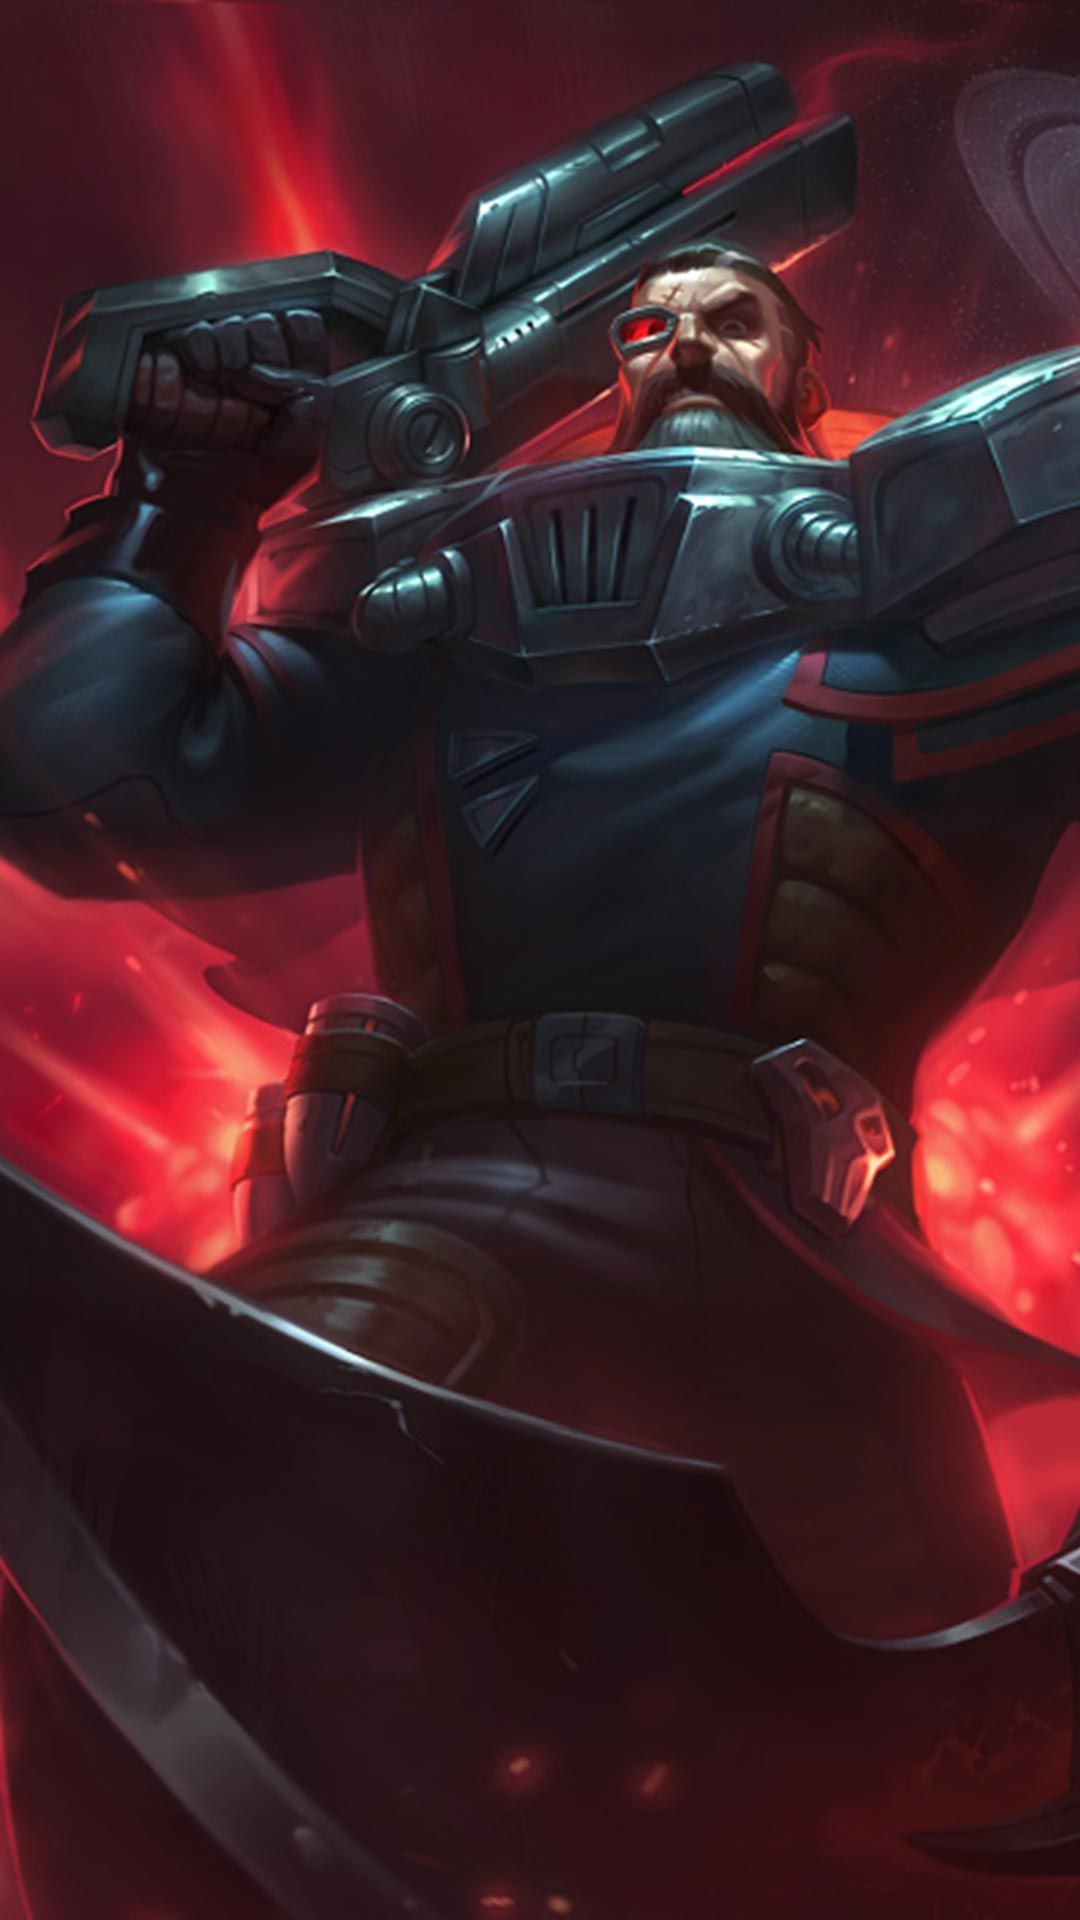 Res: 1080x1920, Dreadnova Gangplank Skin android, iphone wallpaper, mobile background